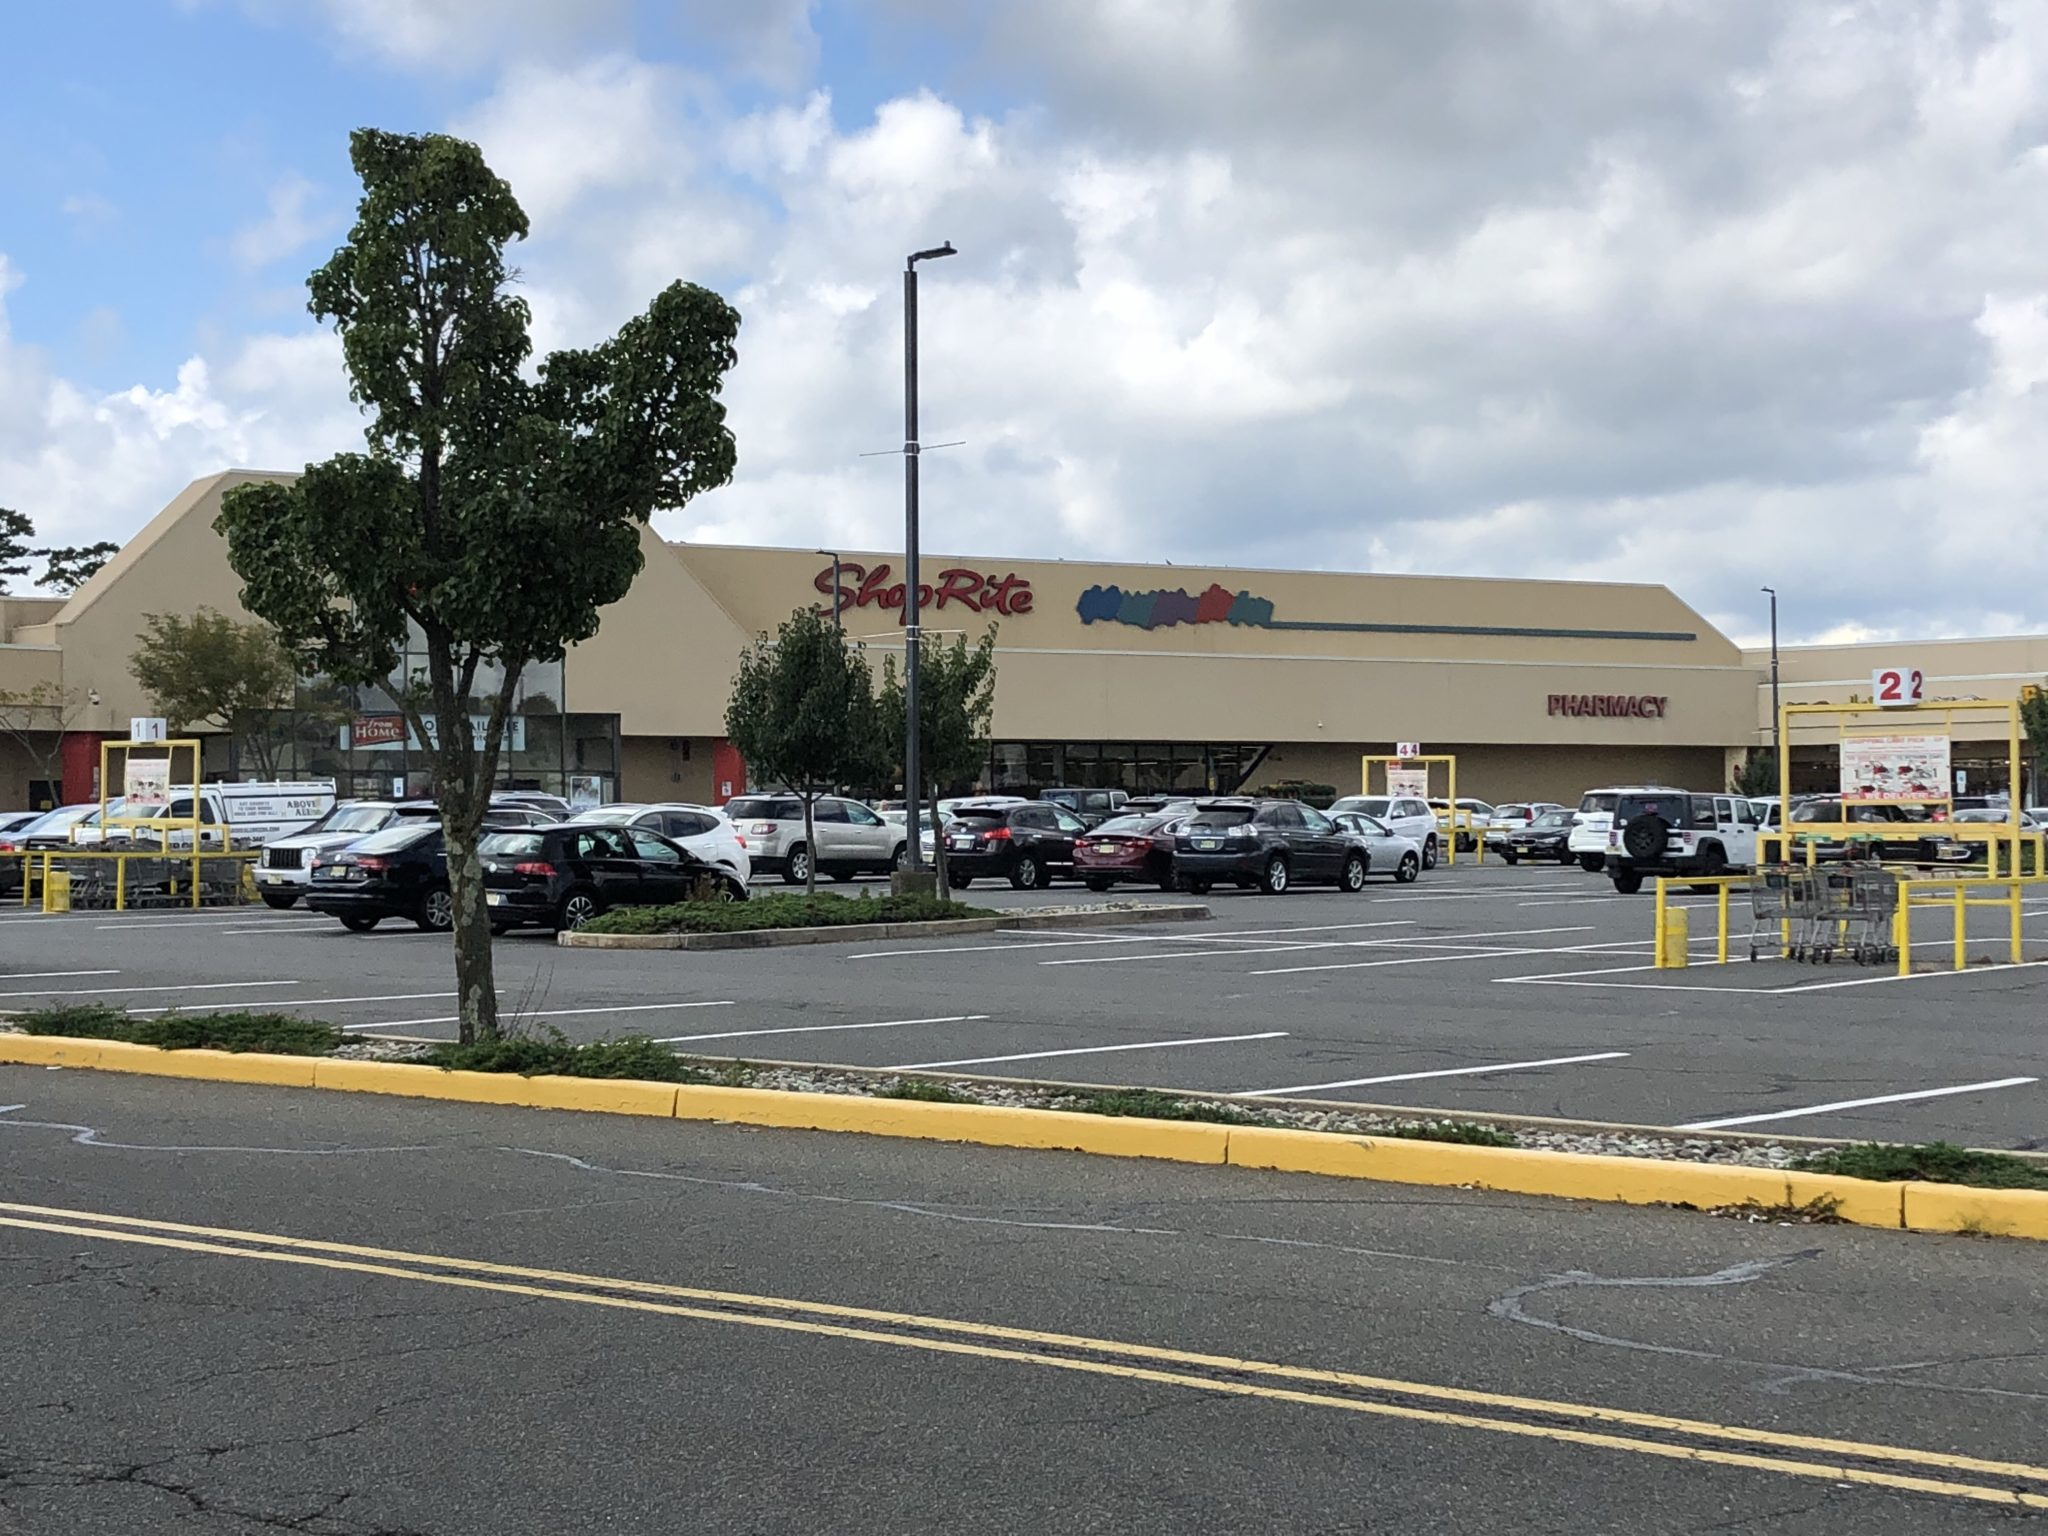 Lacey: Child left Unattended in a Vehicle